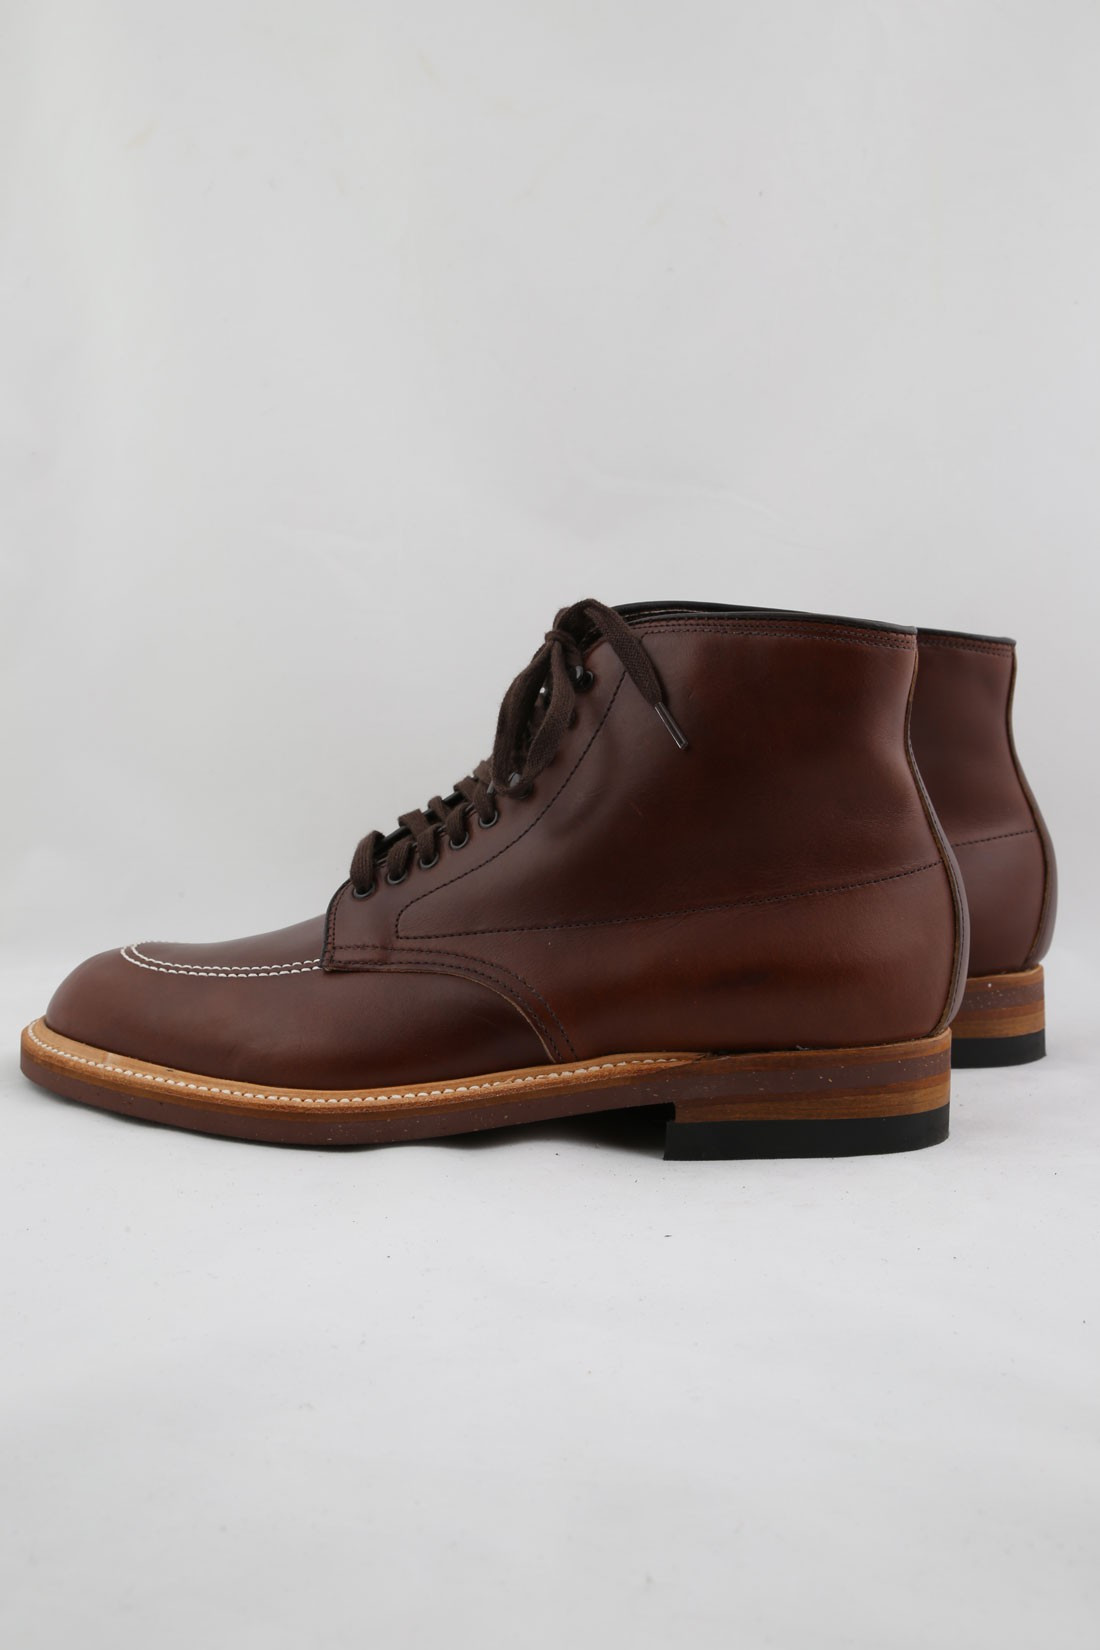 ALDEN SHOE COMPANY / 403 inidie boot chromexel Brown